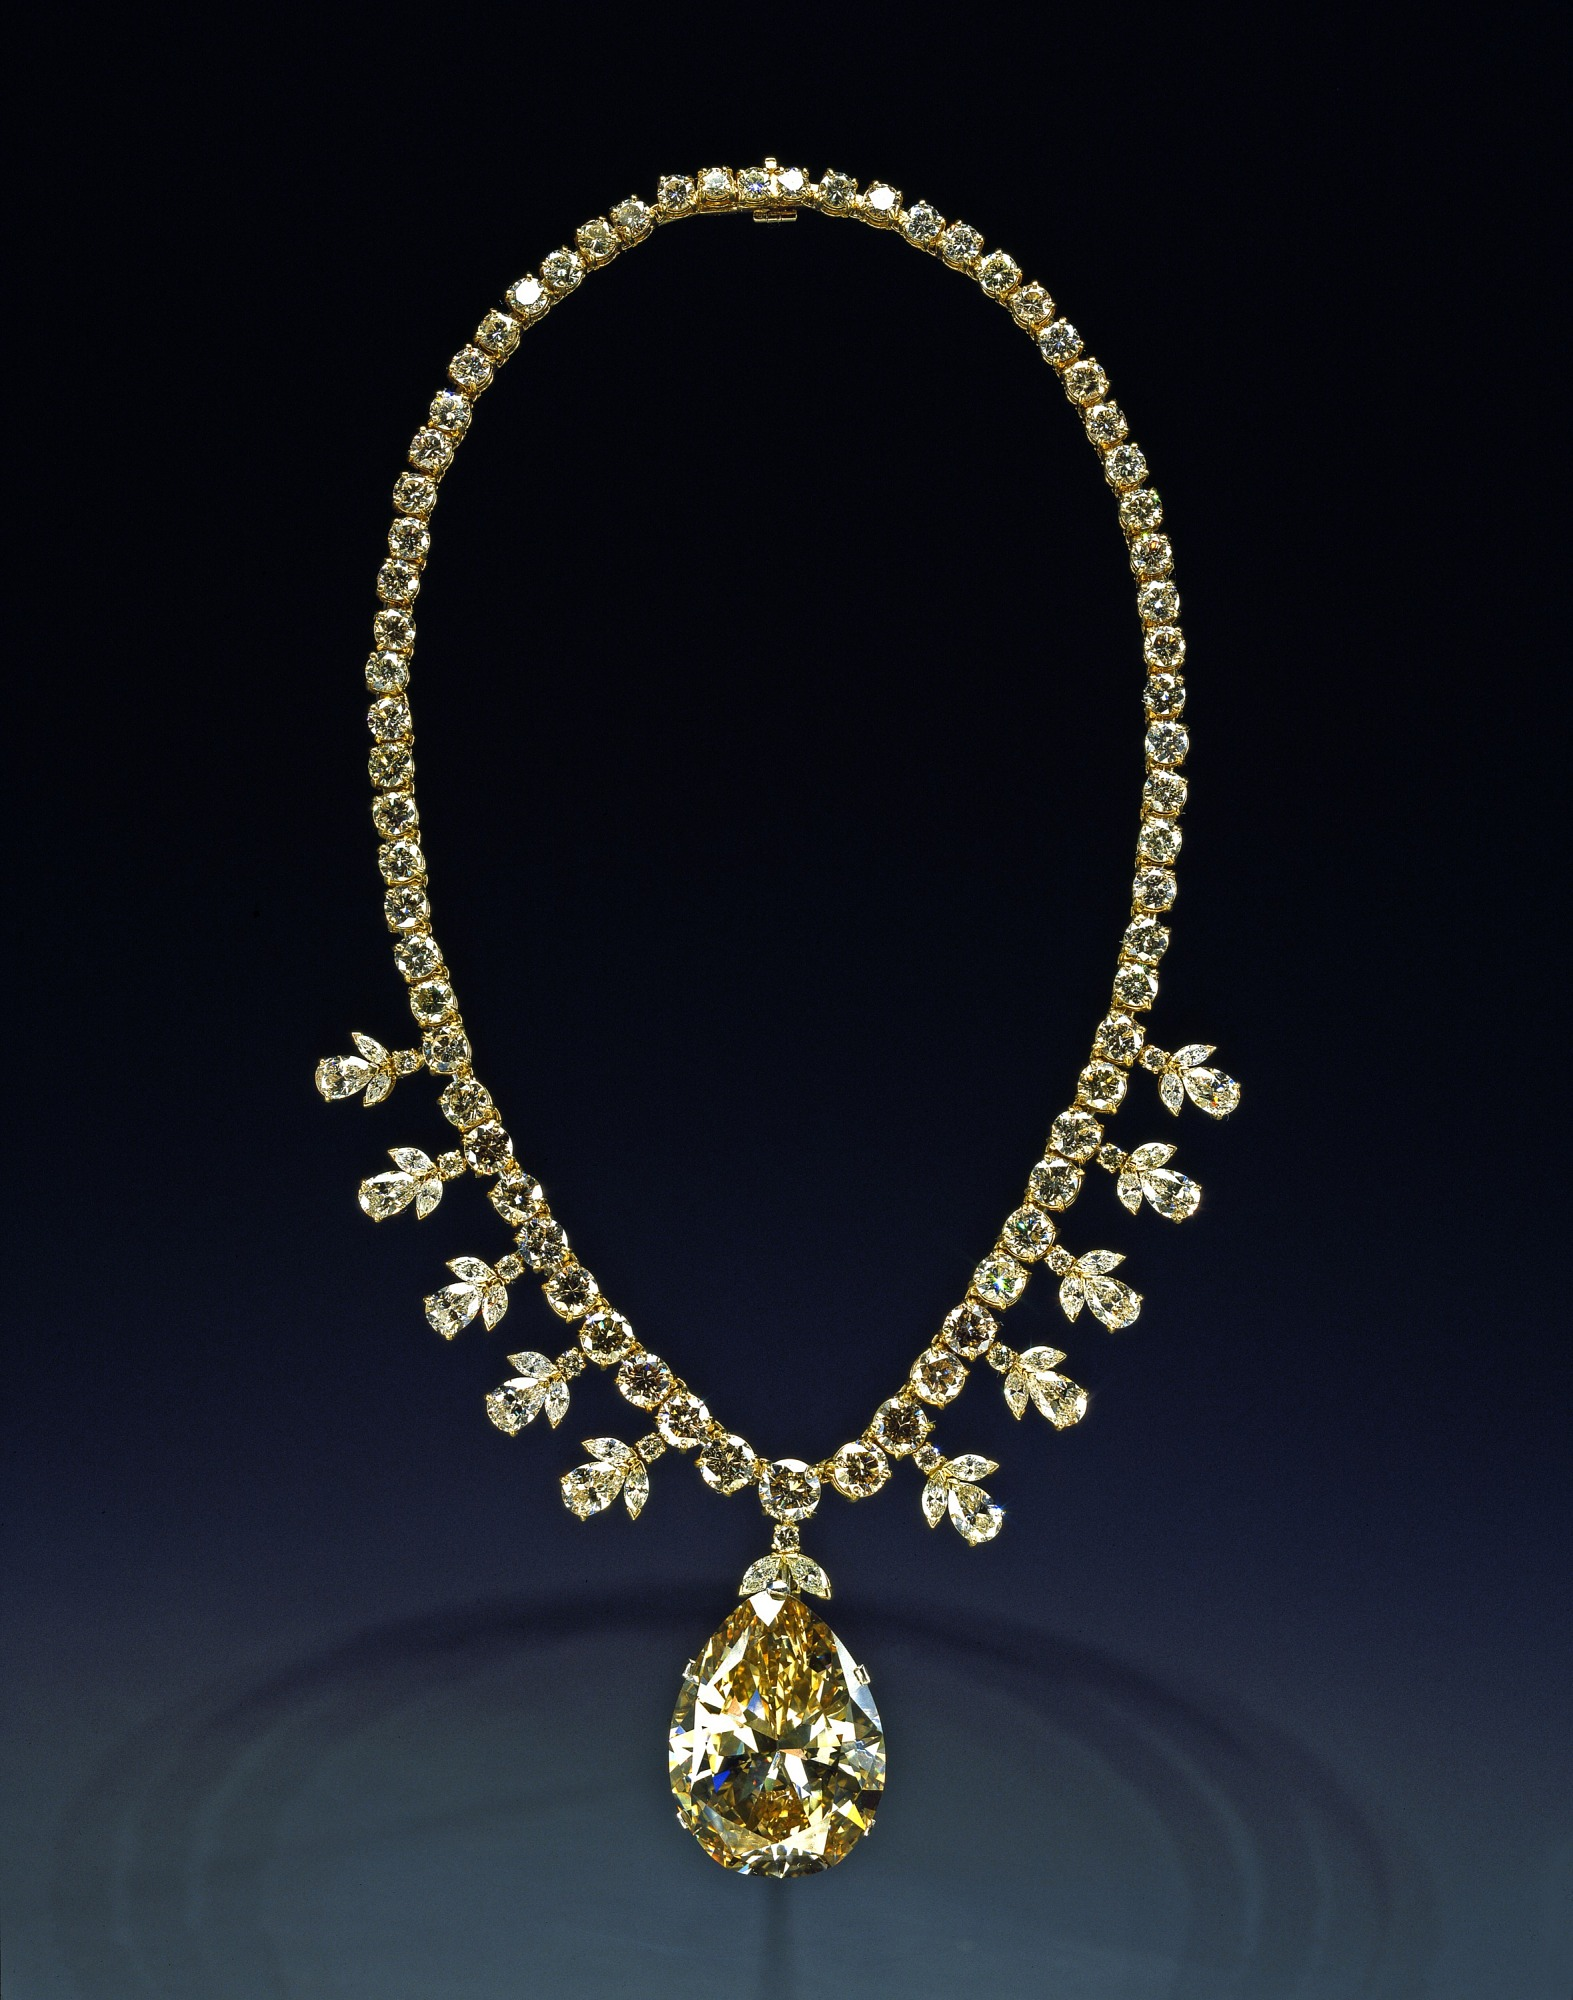 Victoria-Transvaal Diamond, by Unknown, 1997, Smithsonian Archives - History Div, 97-35715.